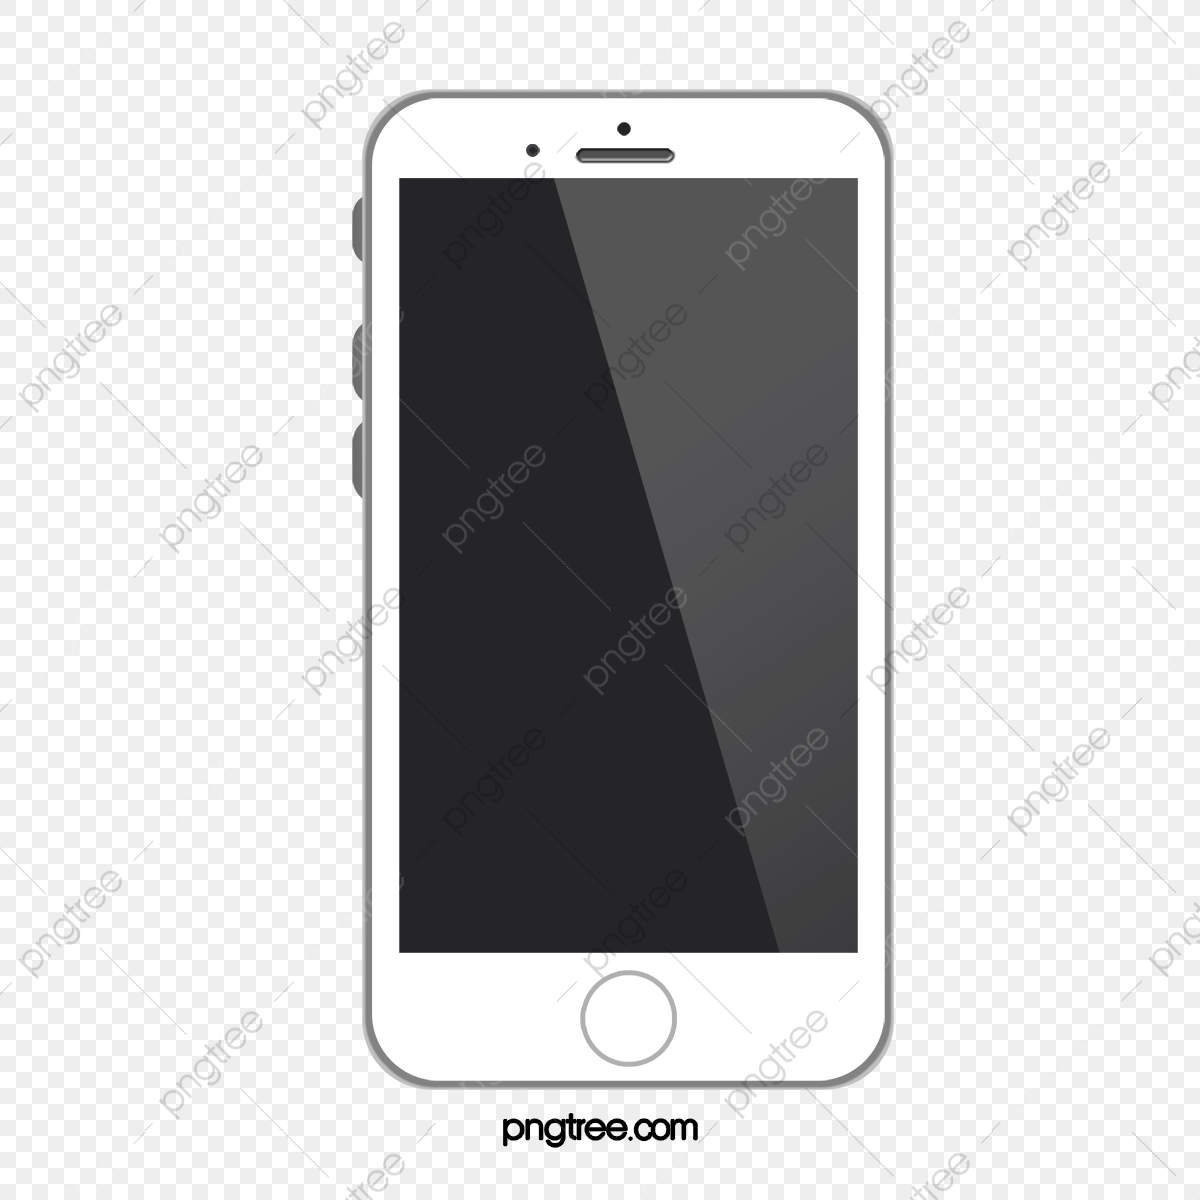 White Phone Model, Vector Material, Iphone, White Apple Phone PNG.